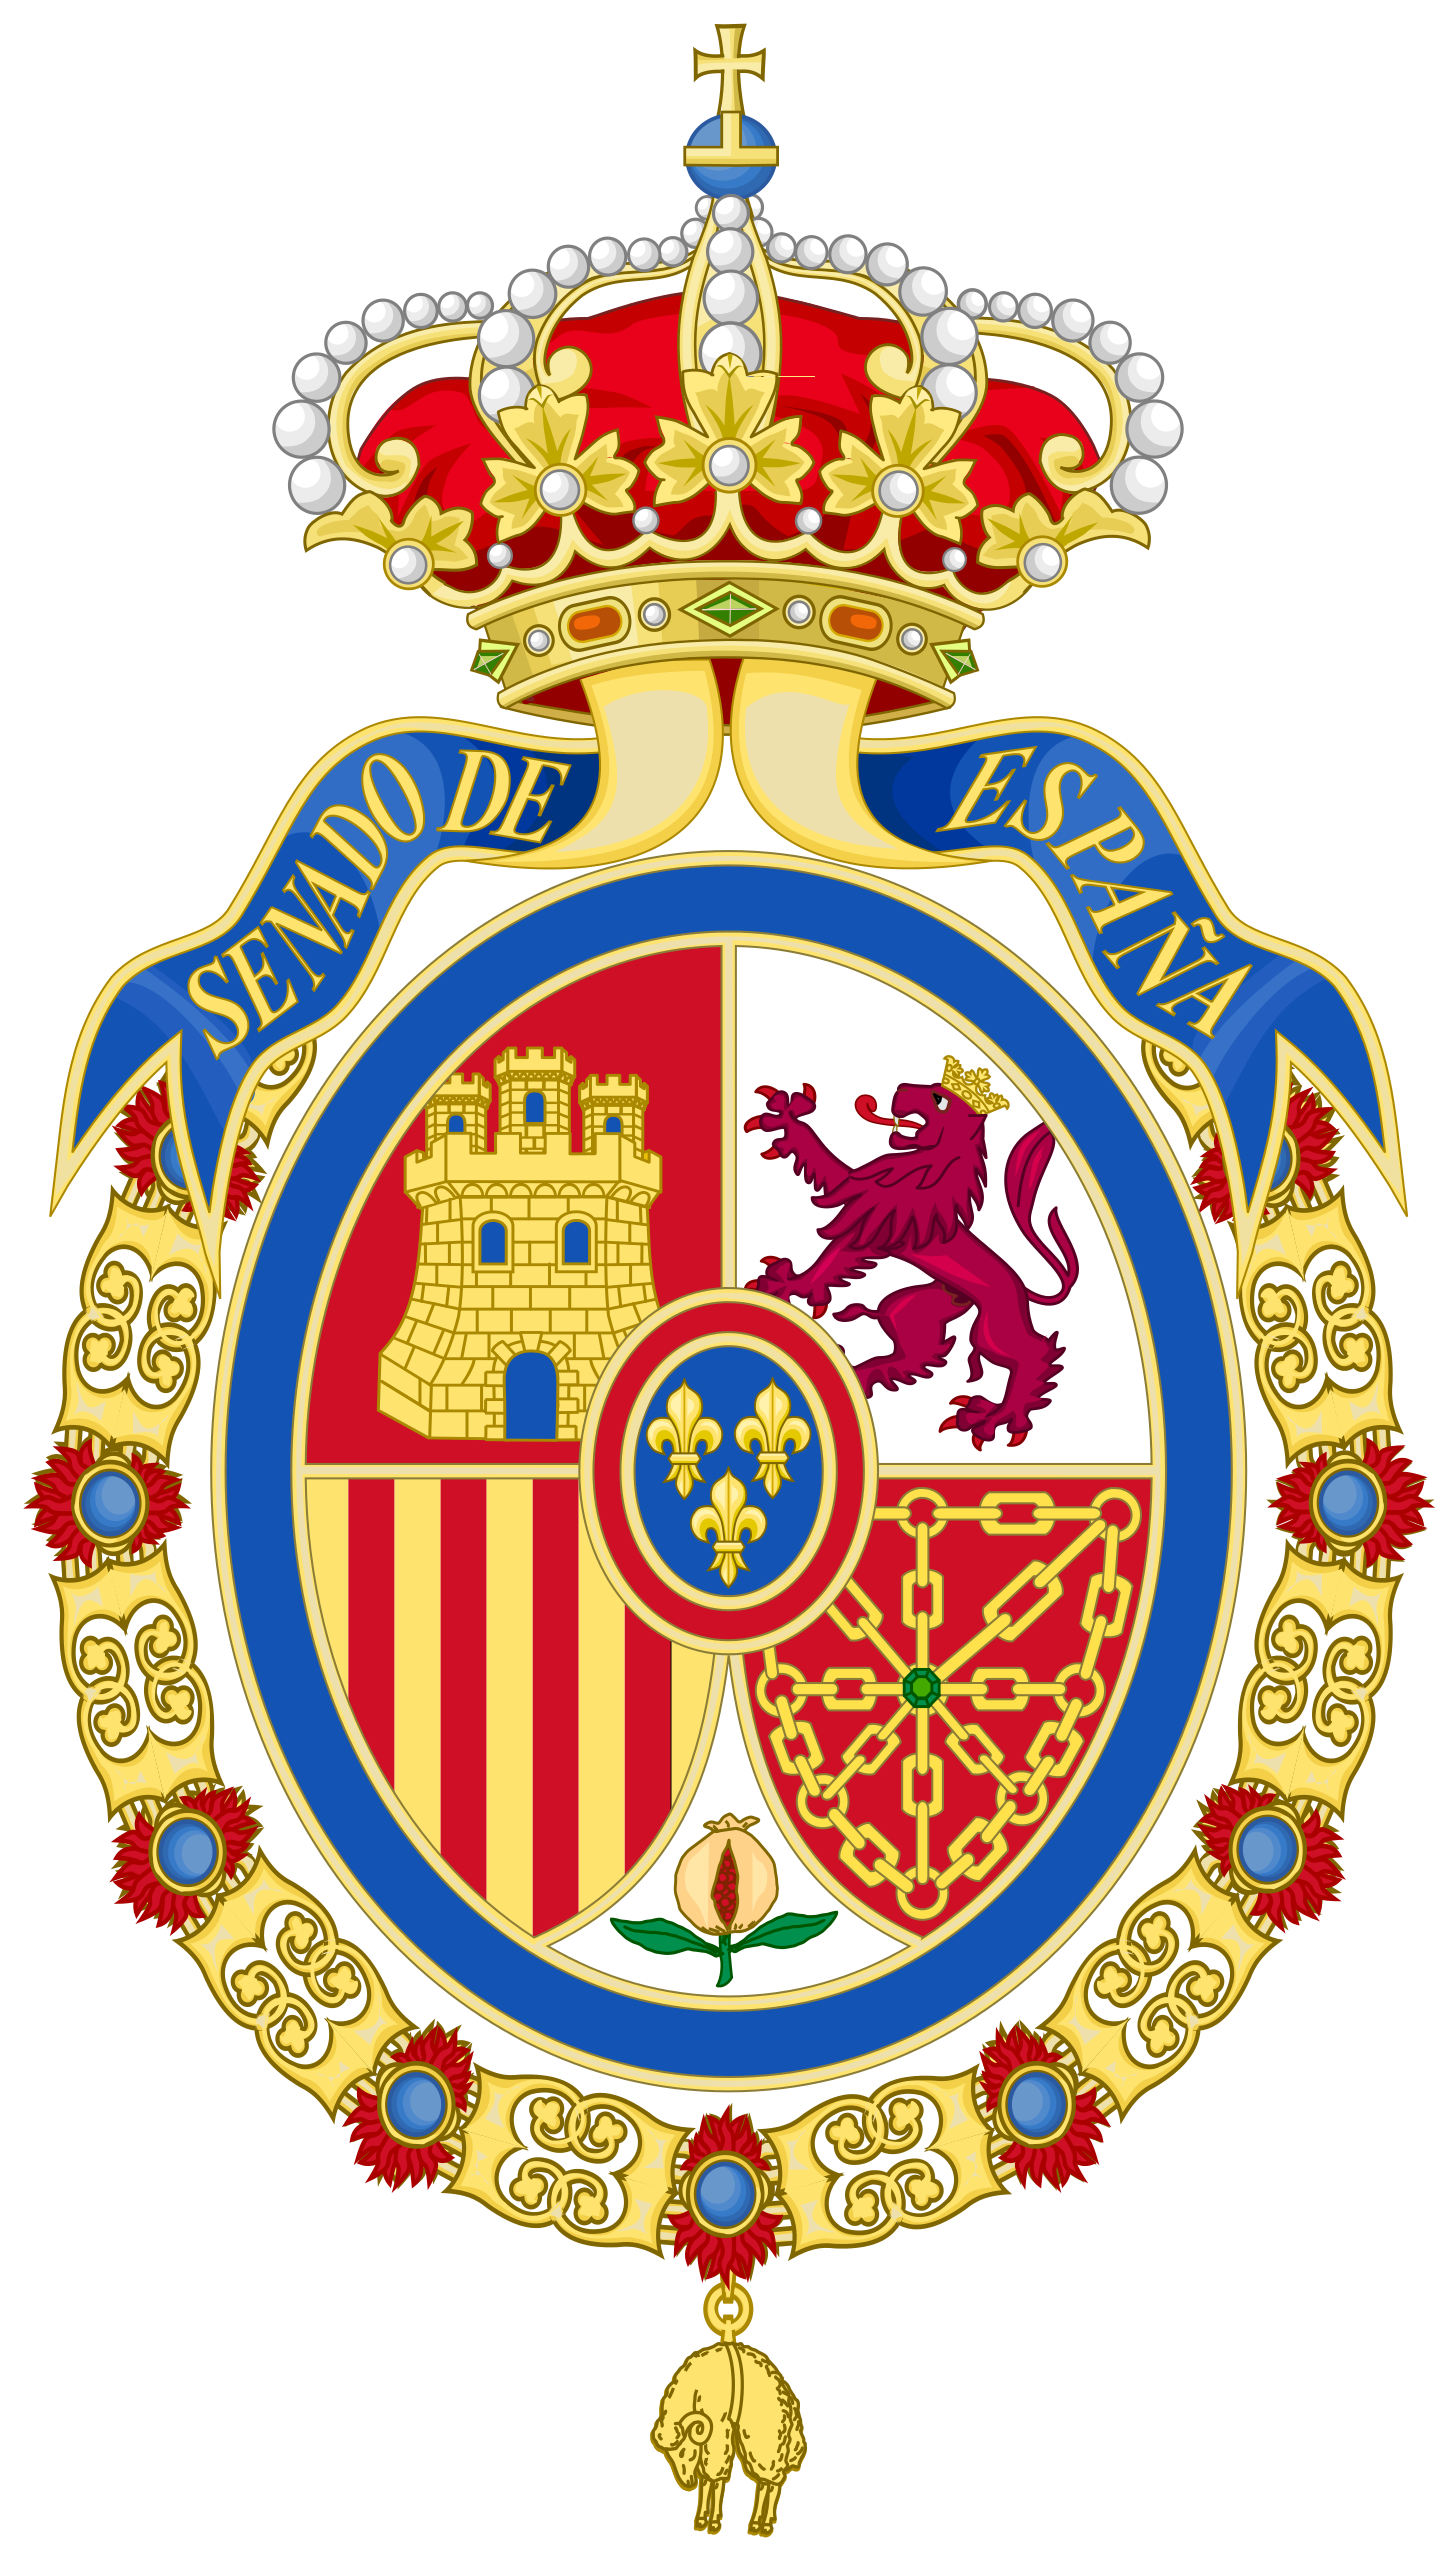 Senado De España Spain Photography Coat Of Arms Spain Travel